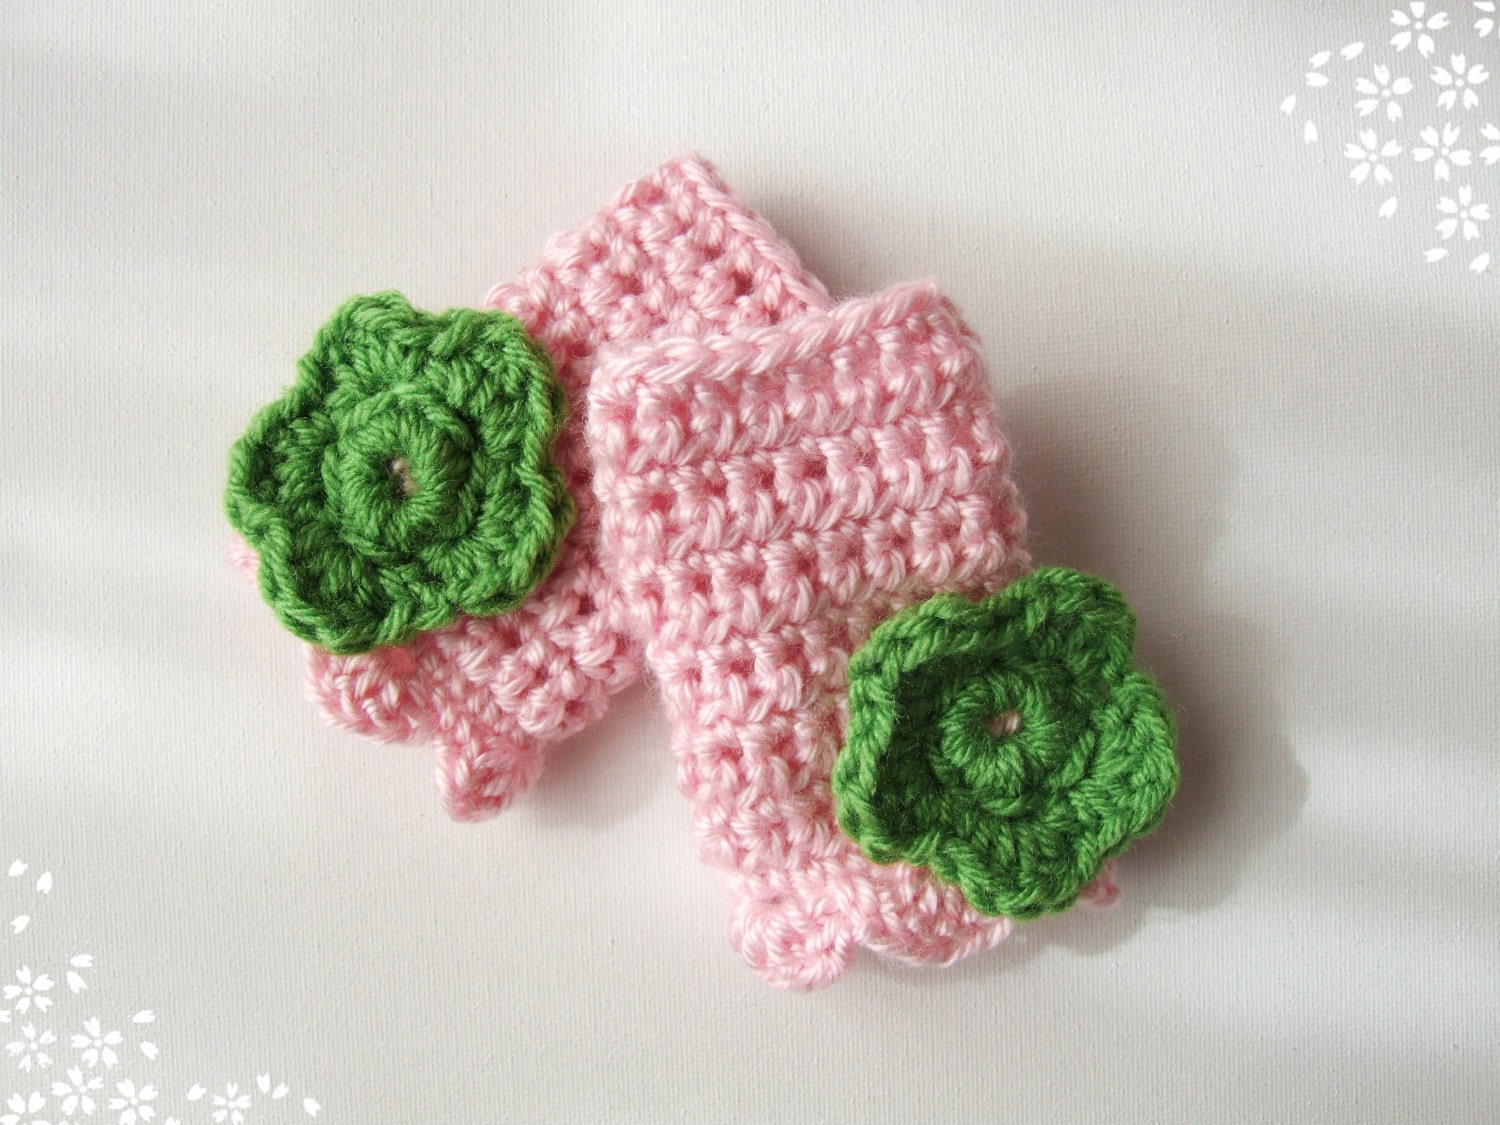 Crochet Fingerless Gloves Children's Spring Flower Preppy Pink and Green - KingSoleil